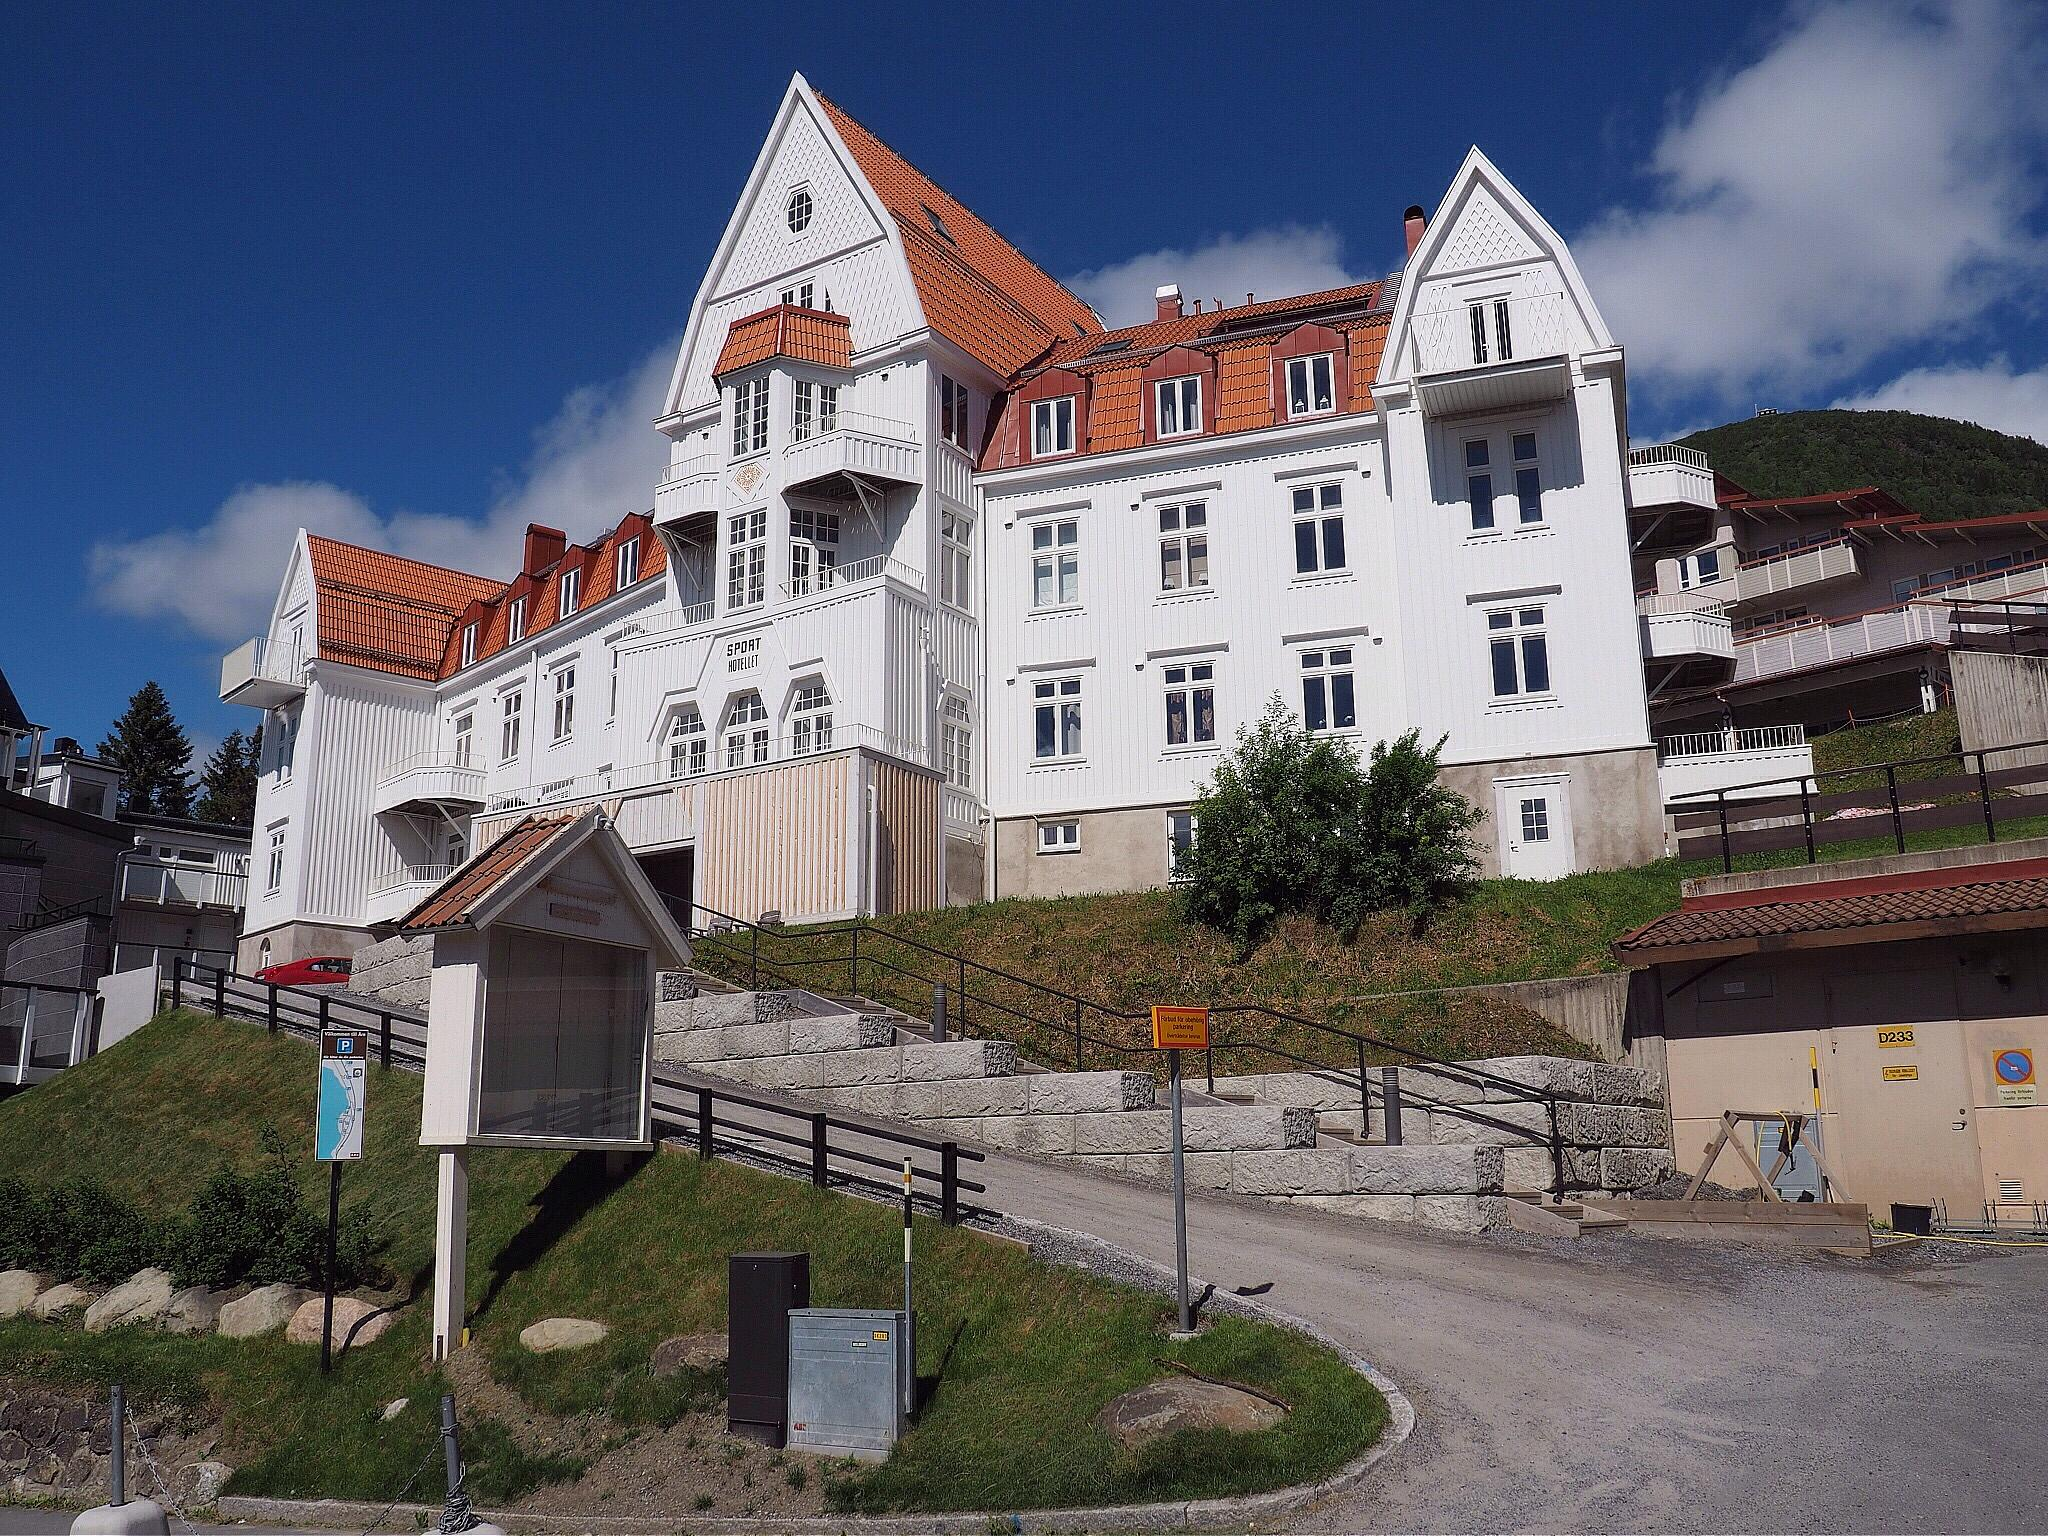 The Sport Hotel in Åre, Sweden by lundhanders